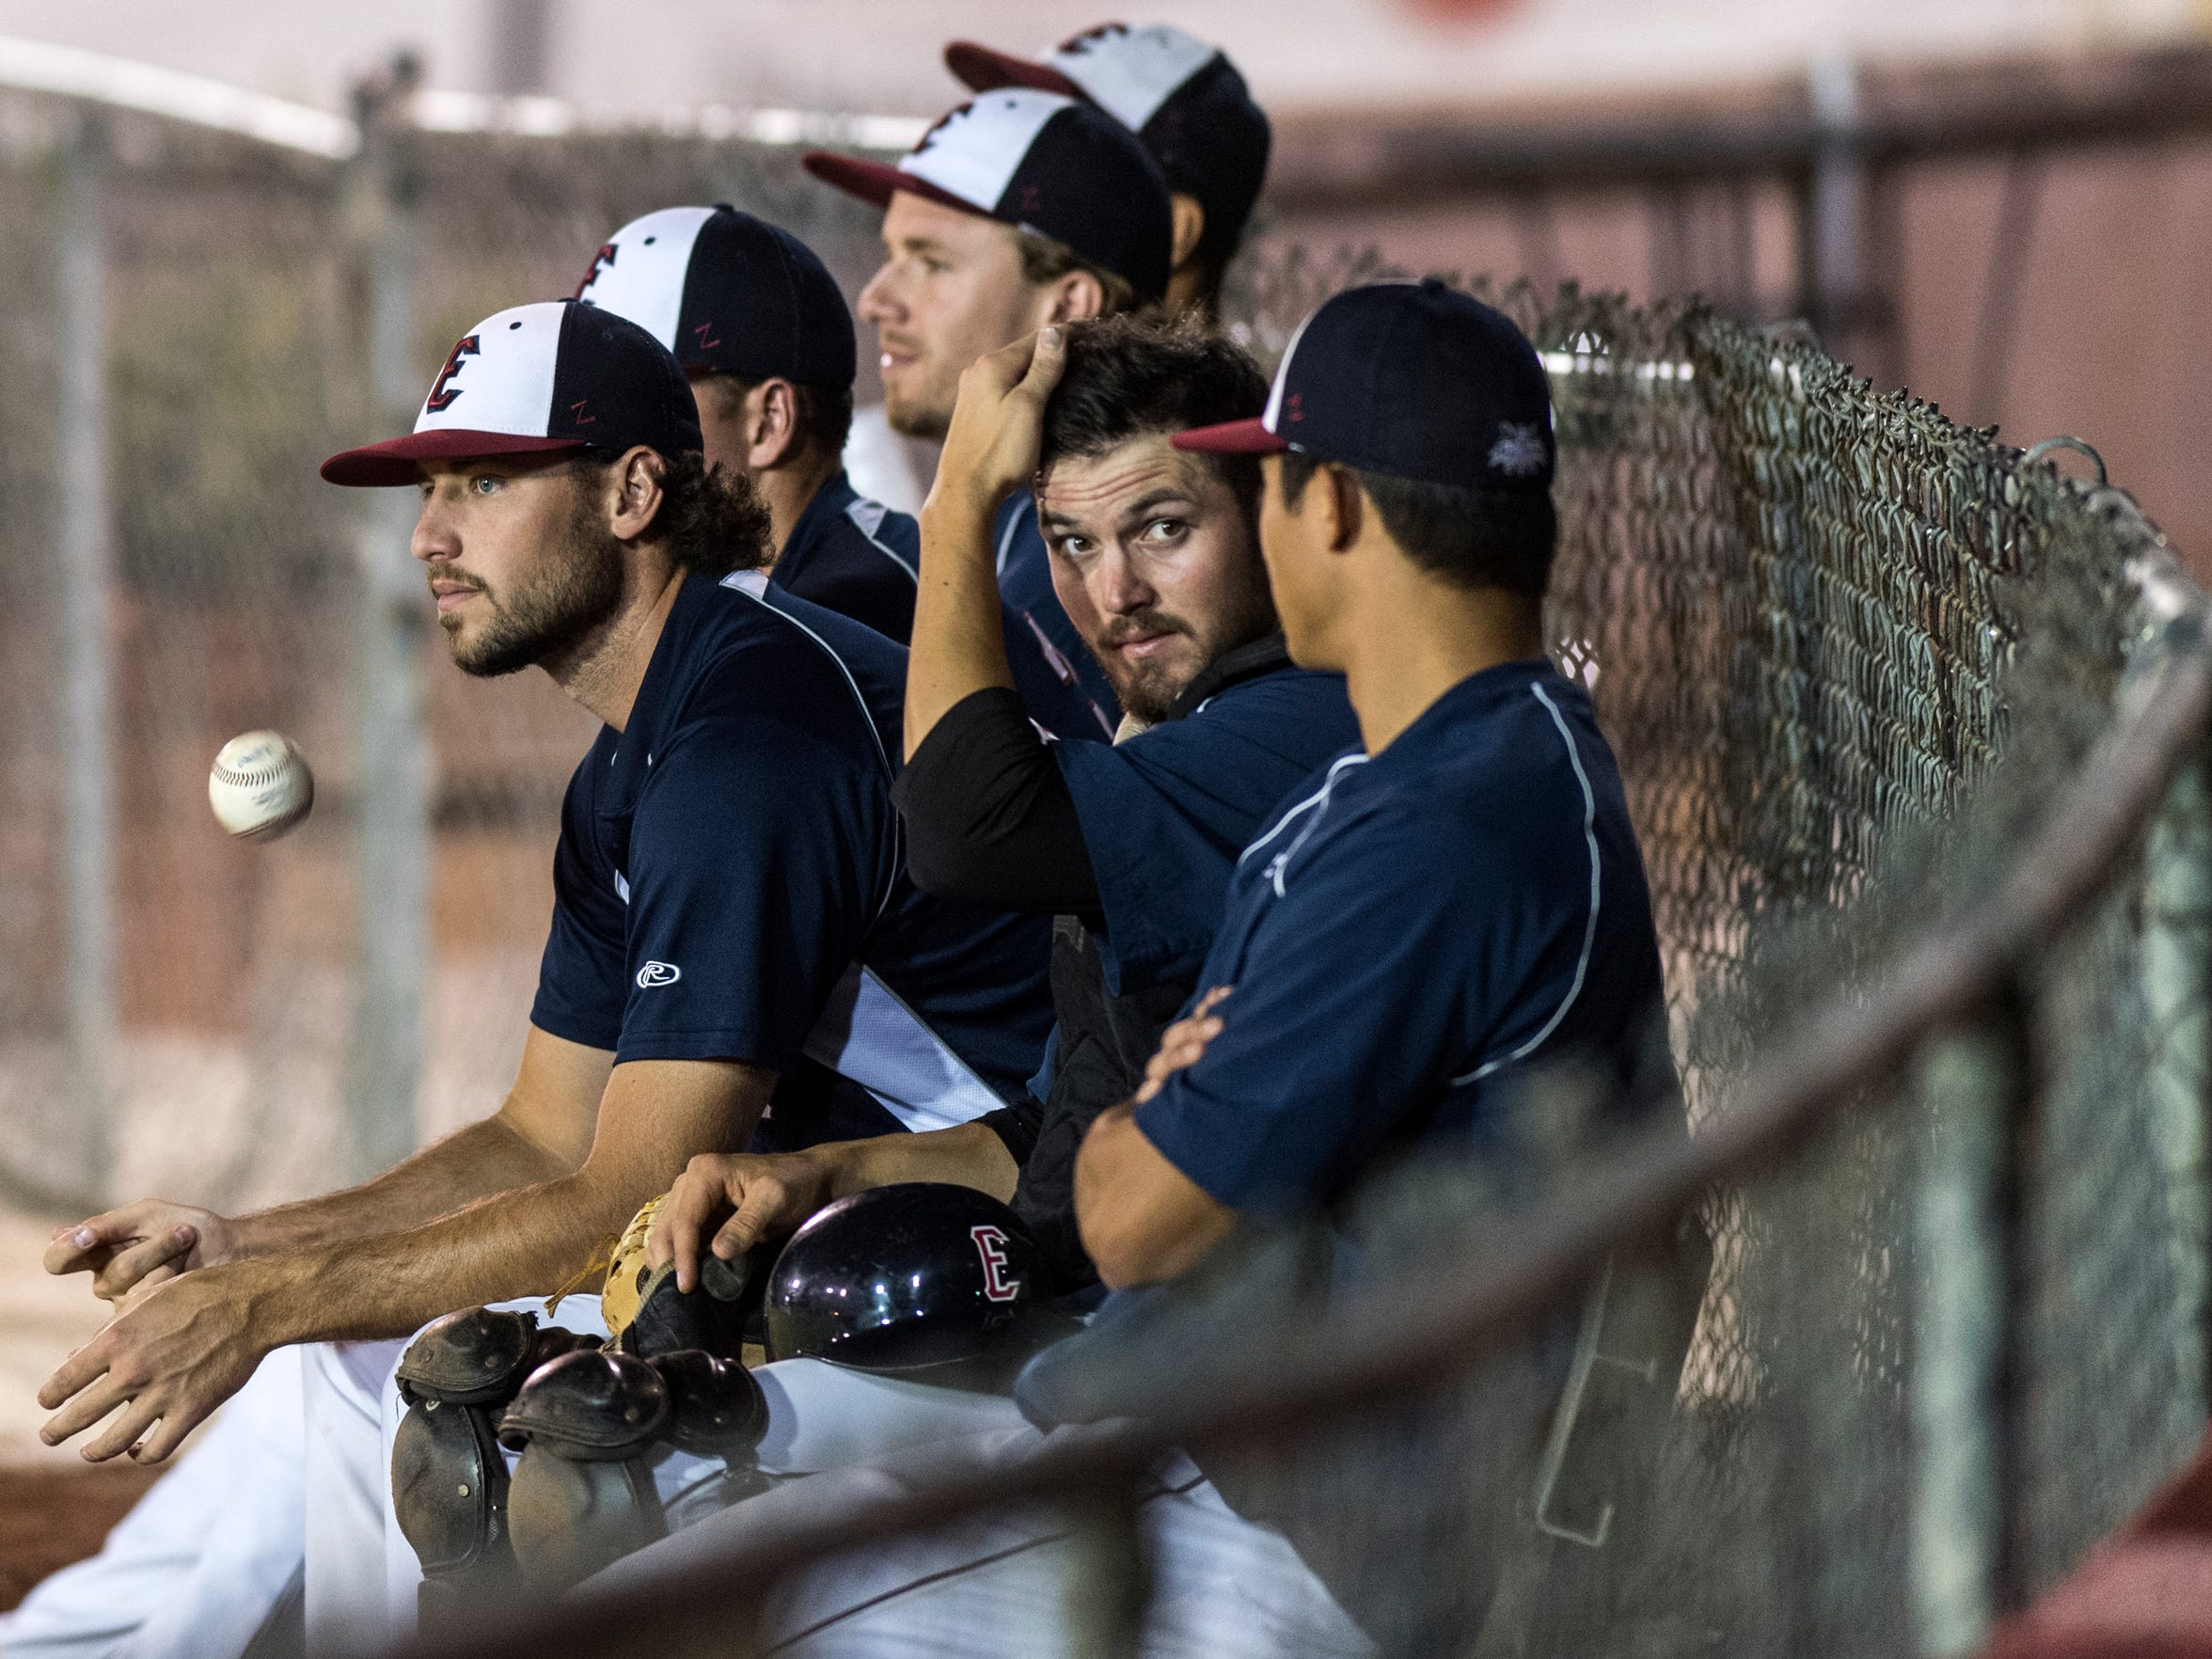 Shane Weedman (left to right) watches his teammates